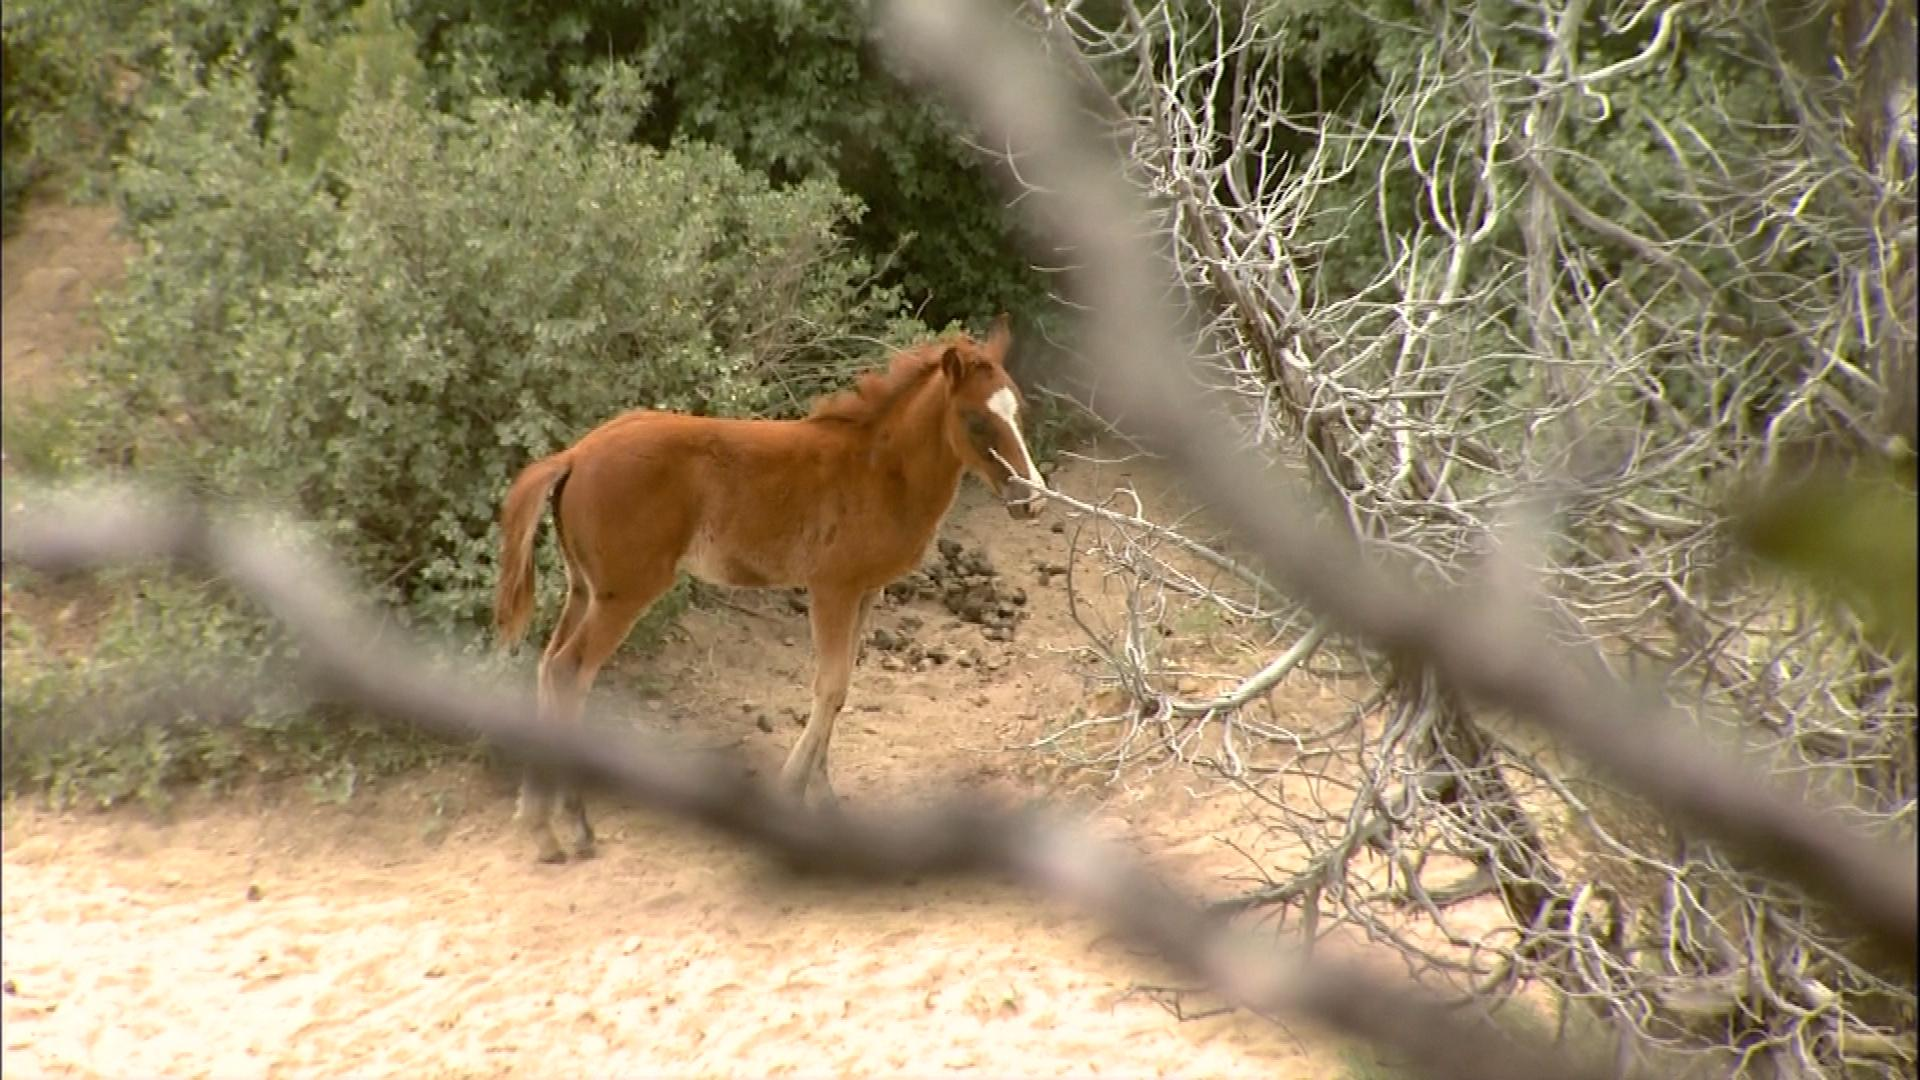 A wild horse on the Western Slope (credit: CBS)